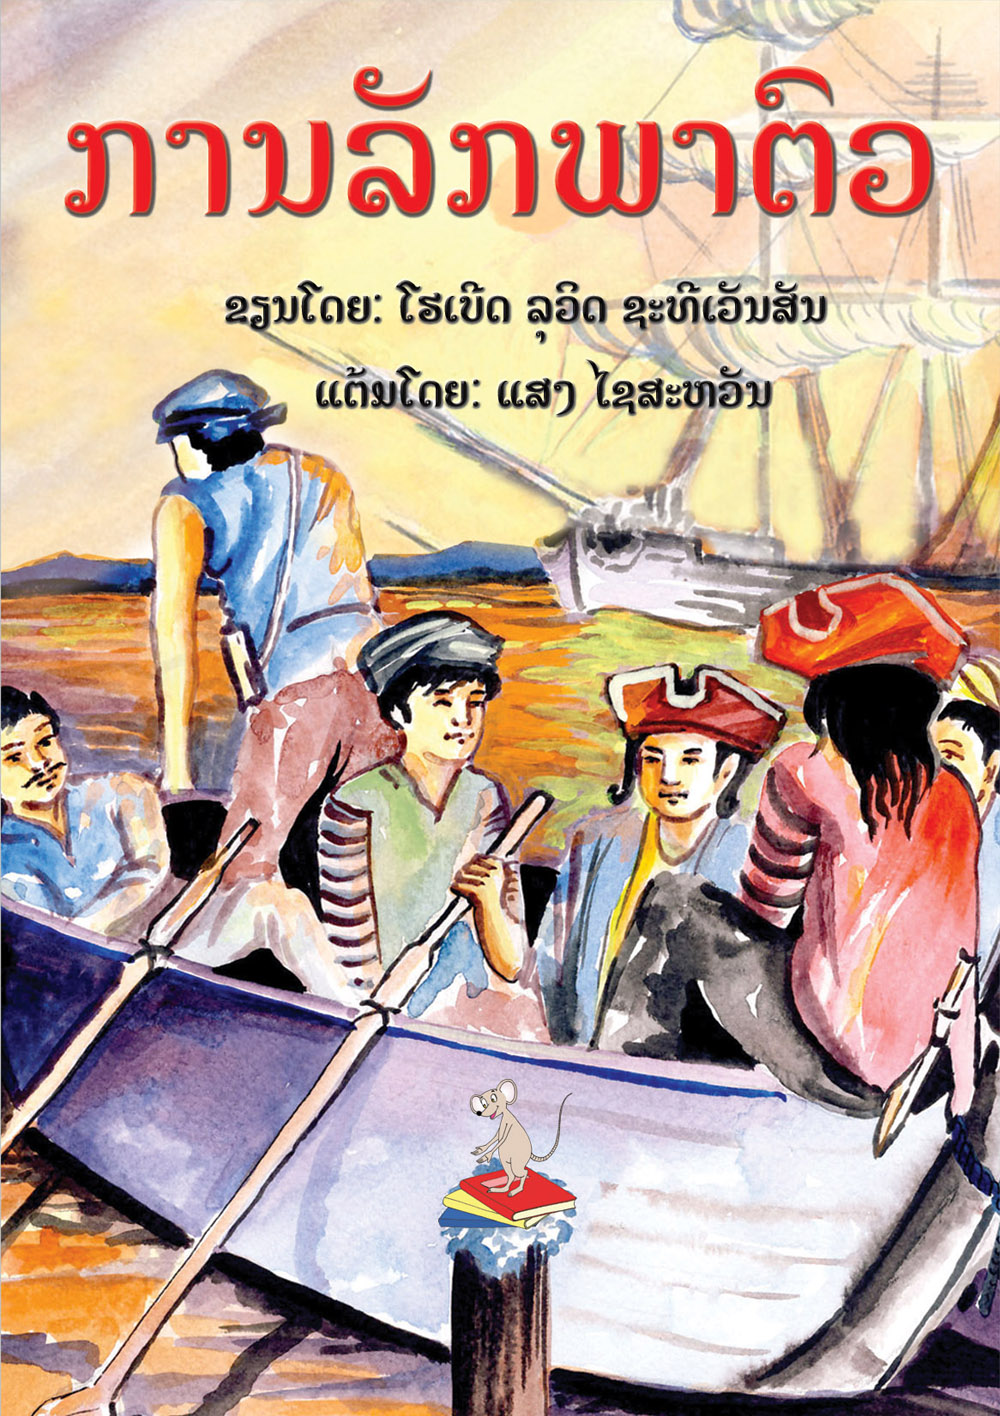 Kidnapped large book cover, published in Lao language